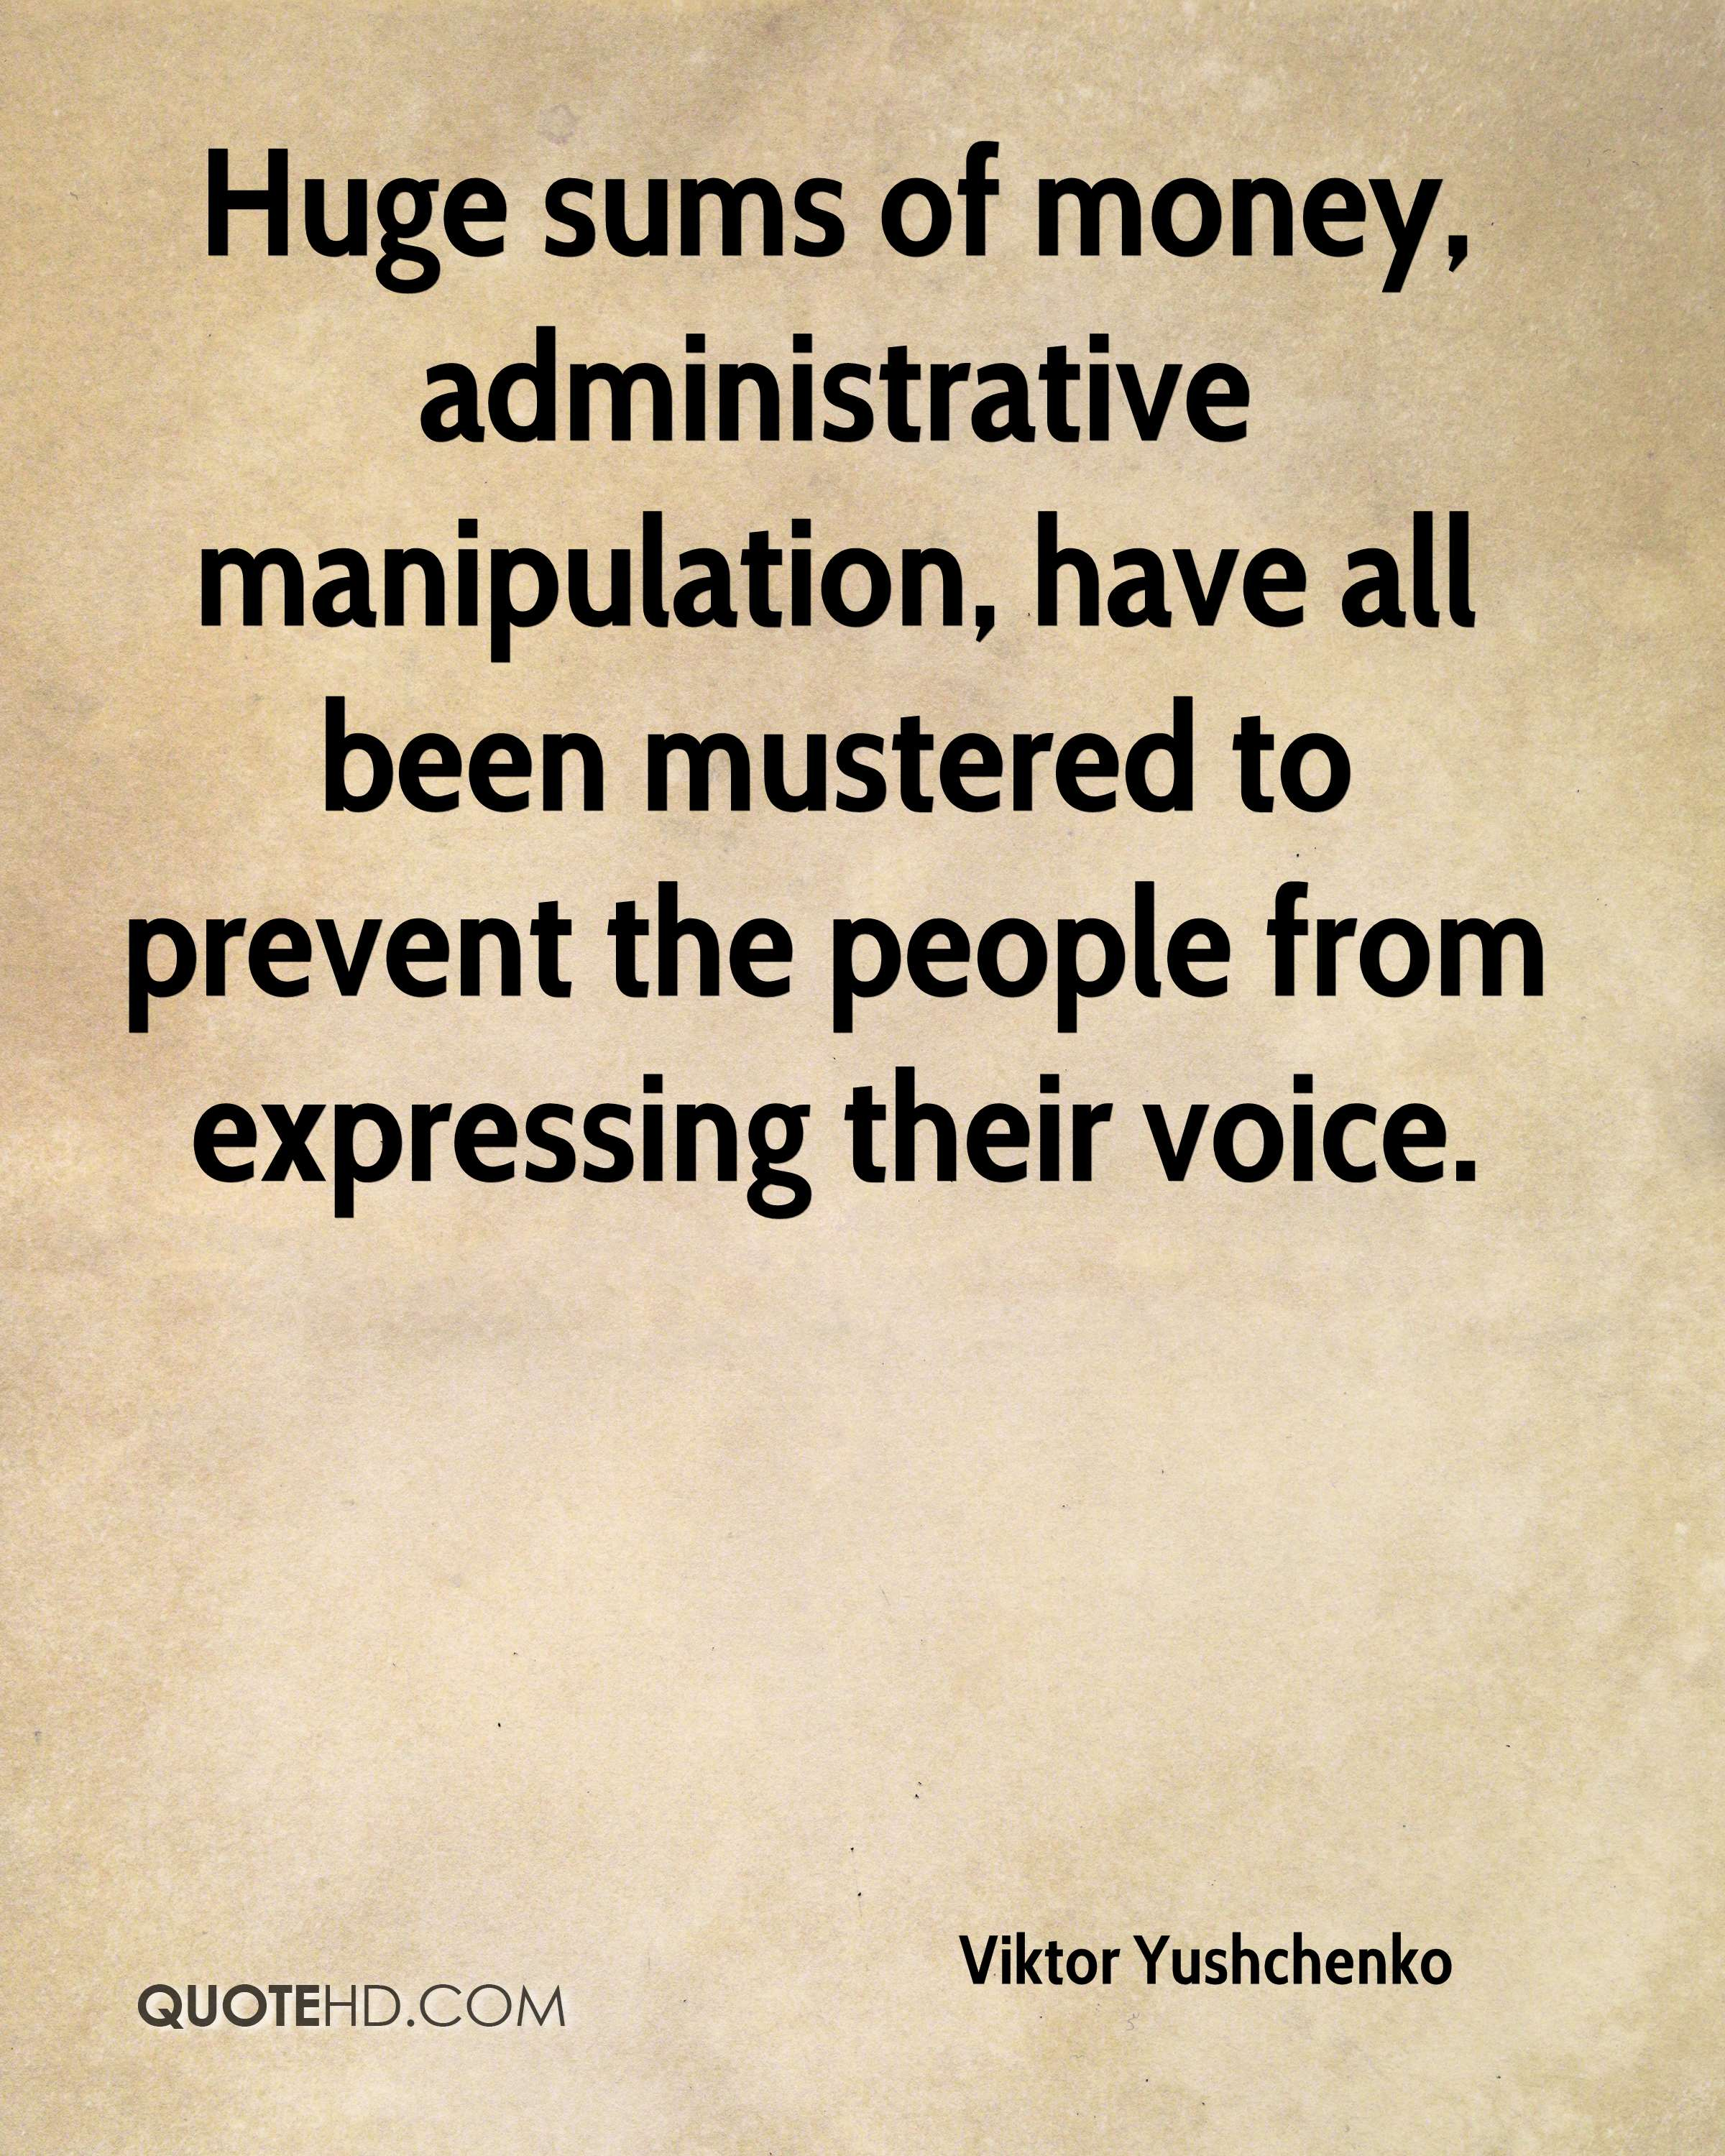 Huge sums of money, administrative manipulation, have all been mustered to prevent the people from expressing their voice.